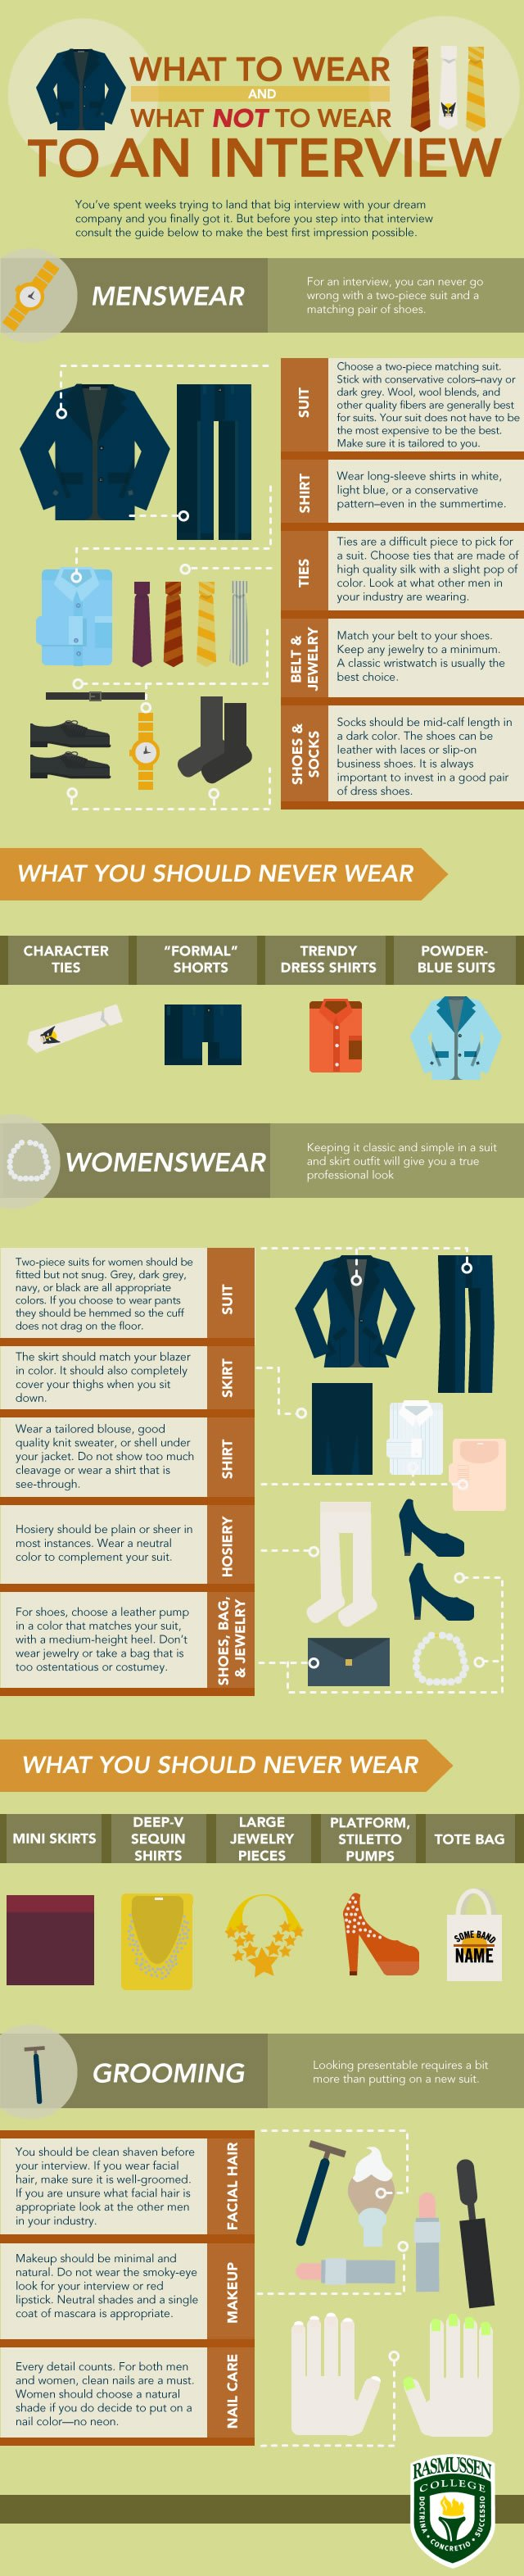 what-to-wear-to an interview by rasmussen college